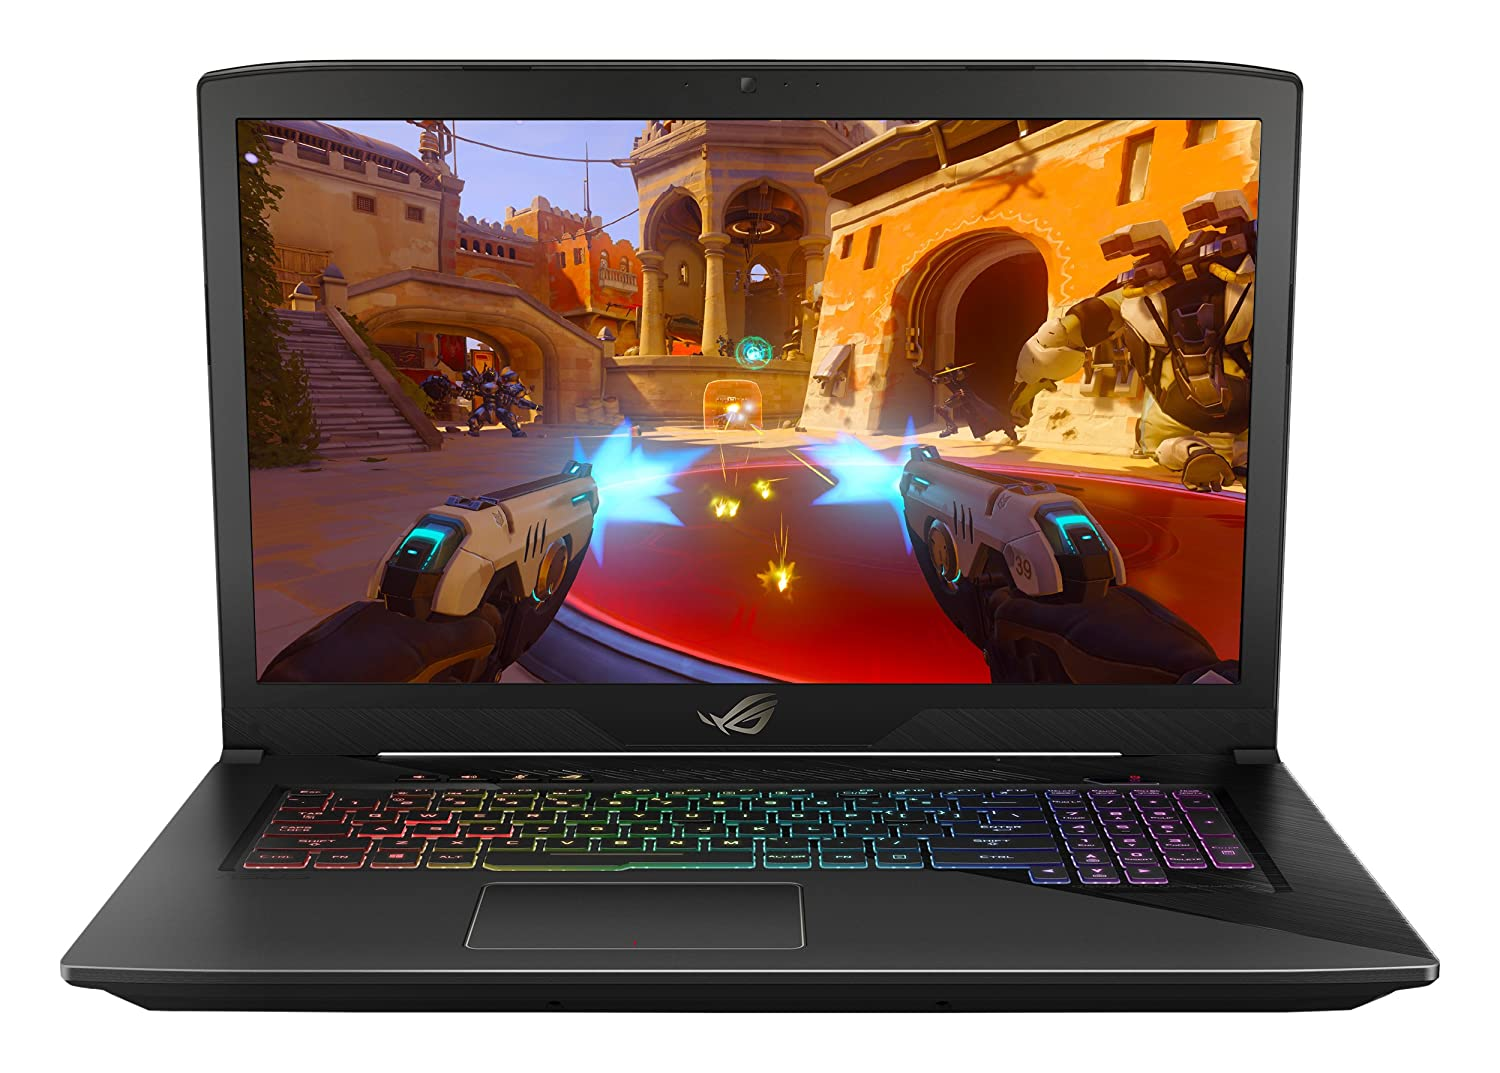 ASUS ROG STRIX GL703VD Gaming Laptop Black Friday Deals